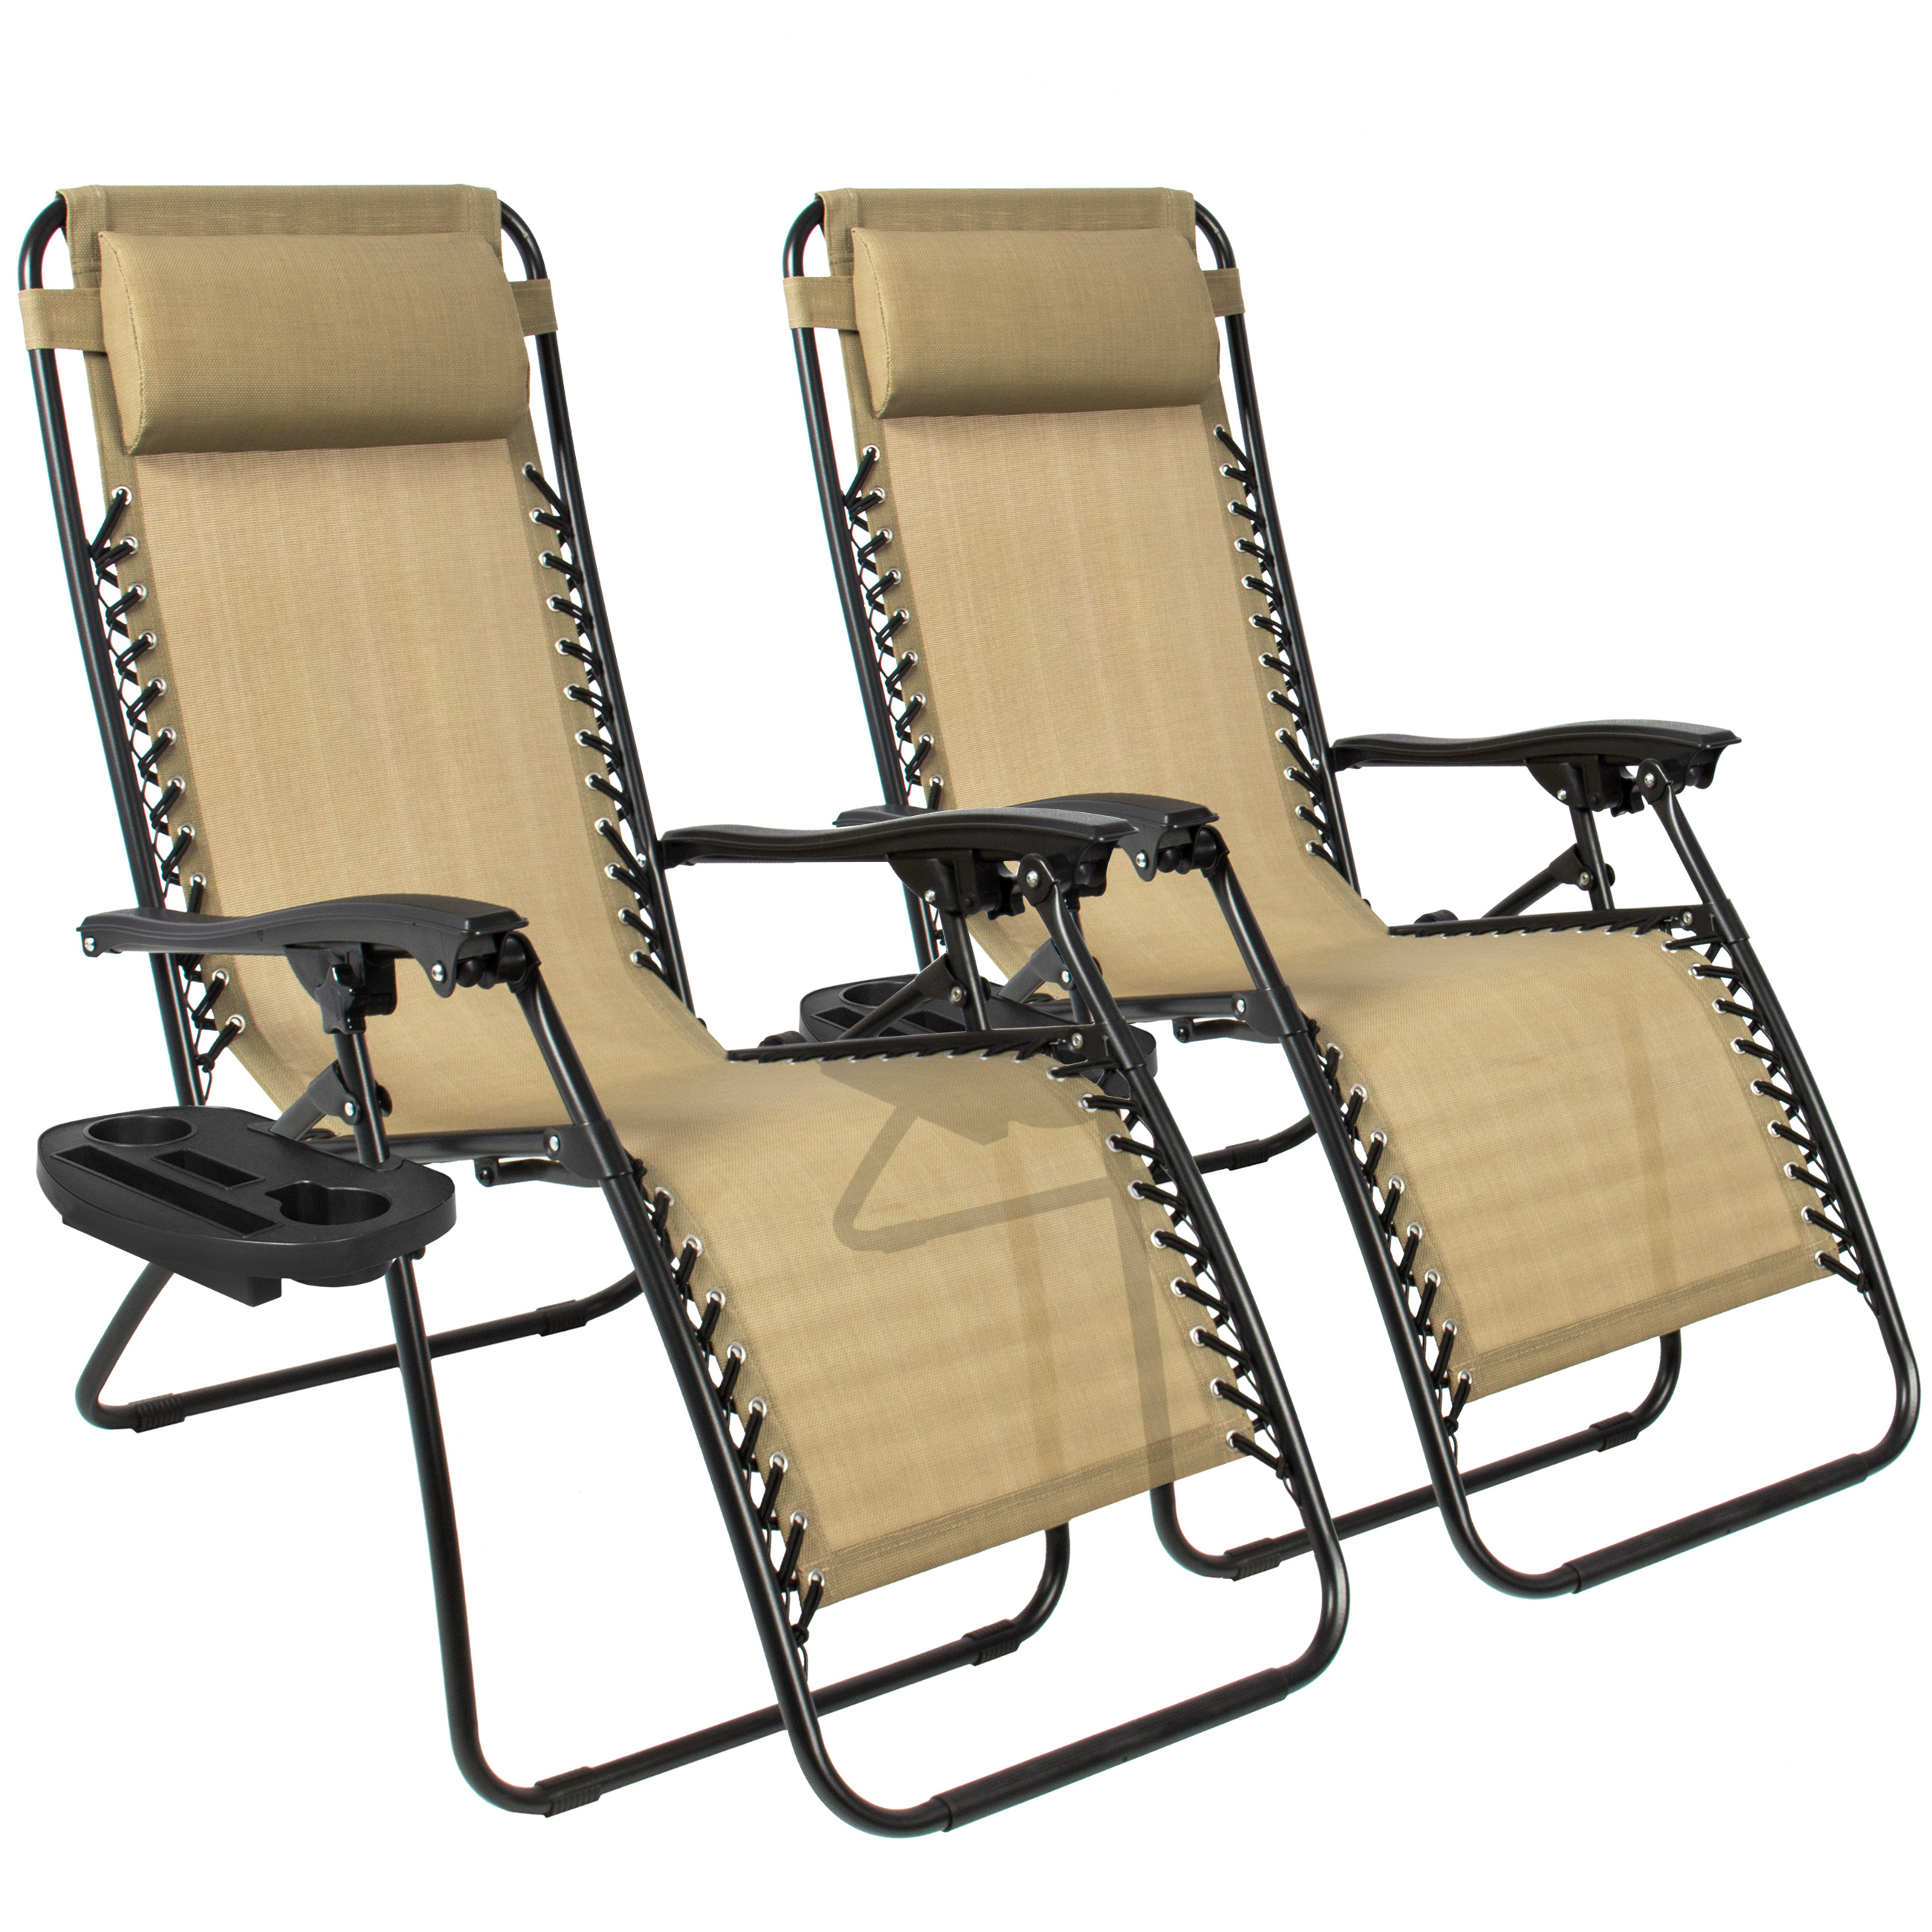 zero gravity chairs case of tan lounge patio chairs outdoor yard beach new